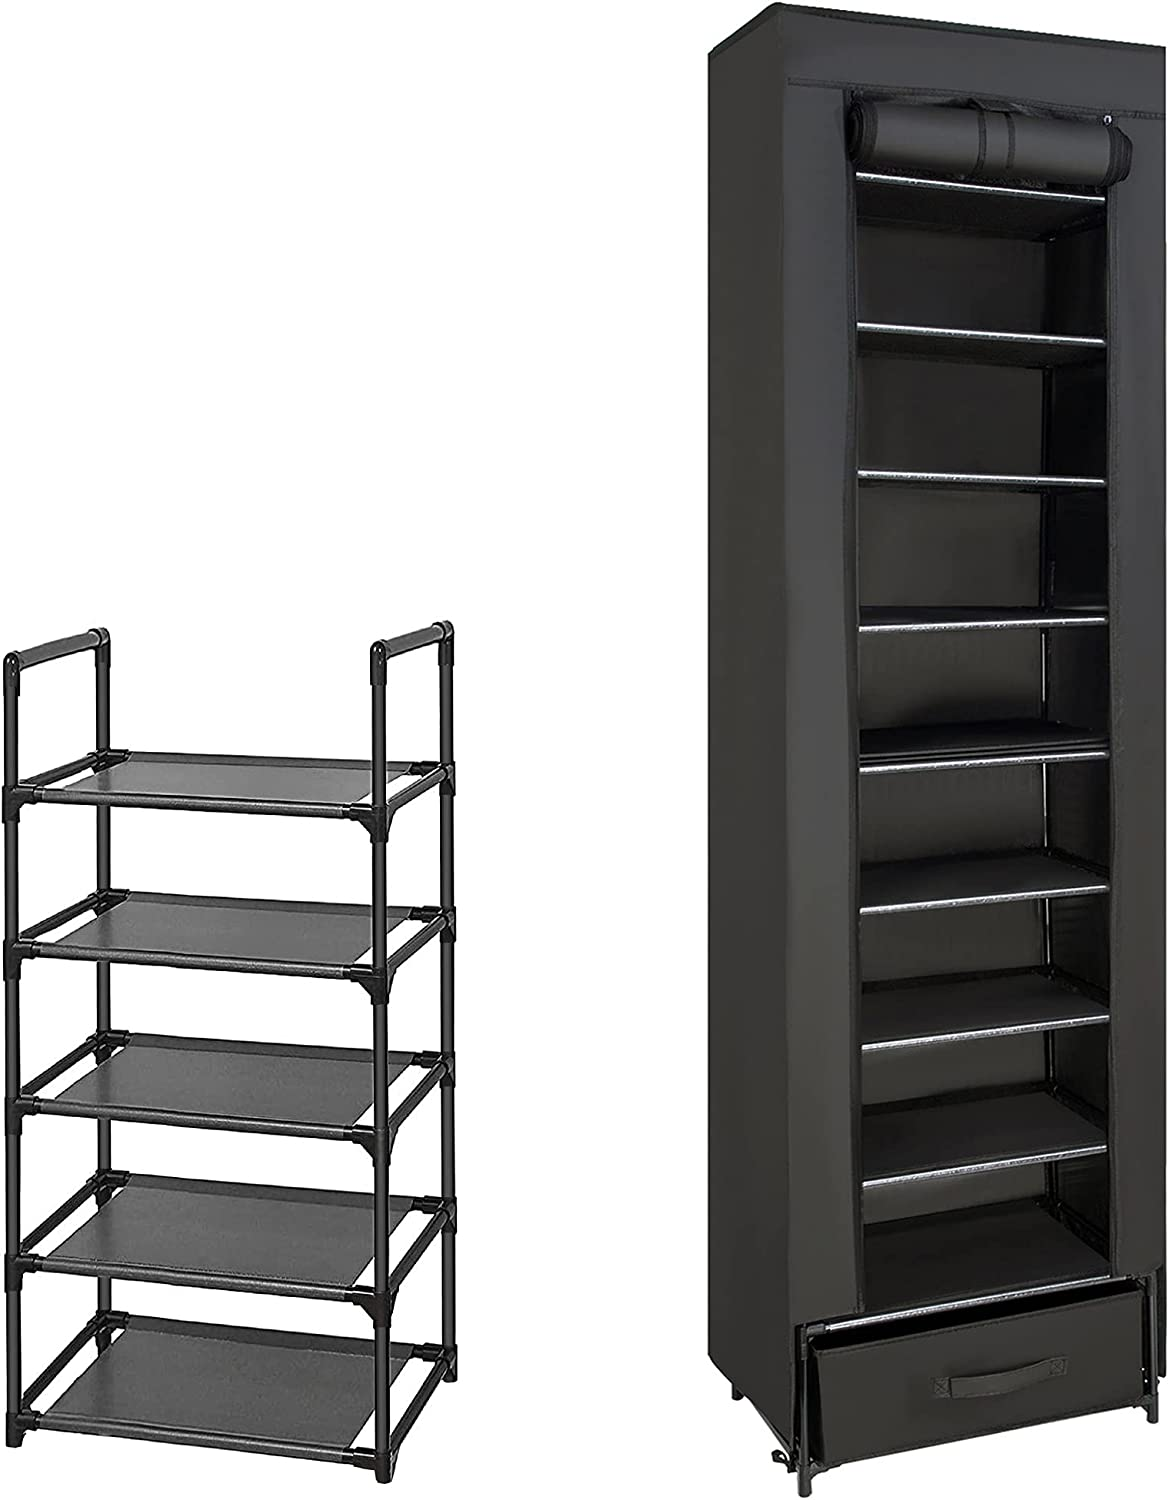 safety NEW before selling Shoe Rack Sturdy Metal Narrow S Organizer